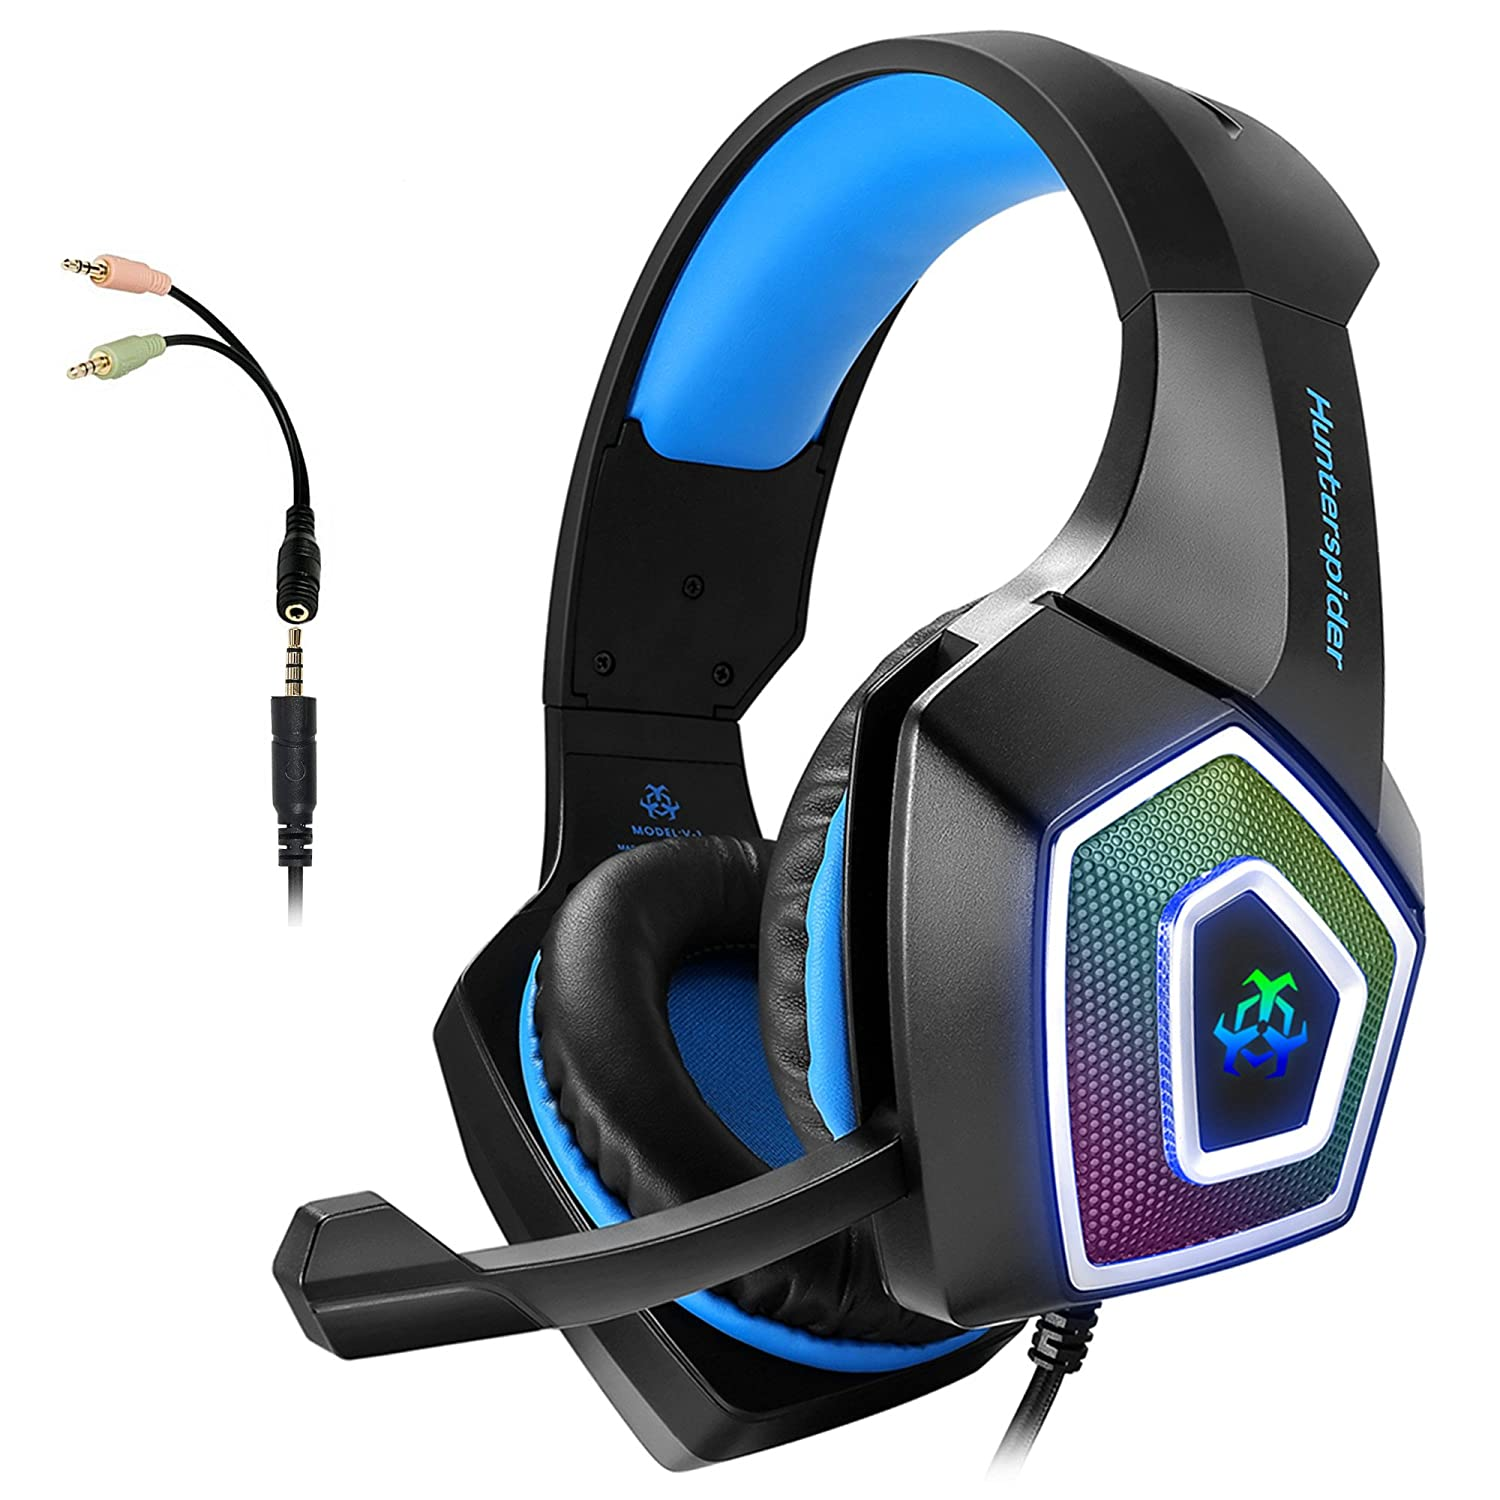 f51a36c60a7 Gaming Headset with Mic for Xbox One PS4 PC Switch Tablet Smartphone,  Headphones Stereo Over Ear Bass 3.5mm Microphone Noise Canceling 7 LED  Light Soft ...